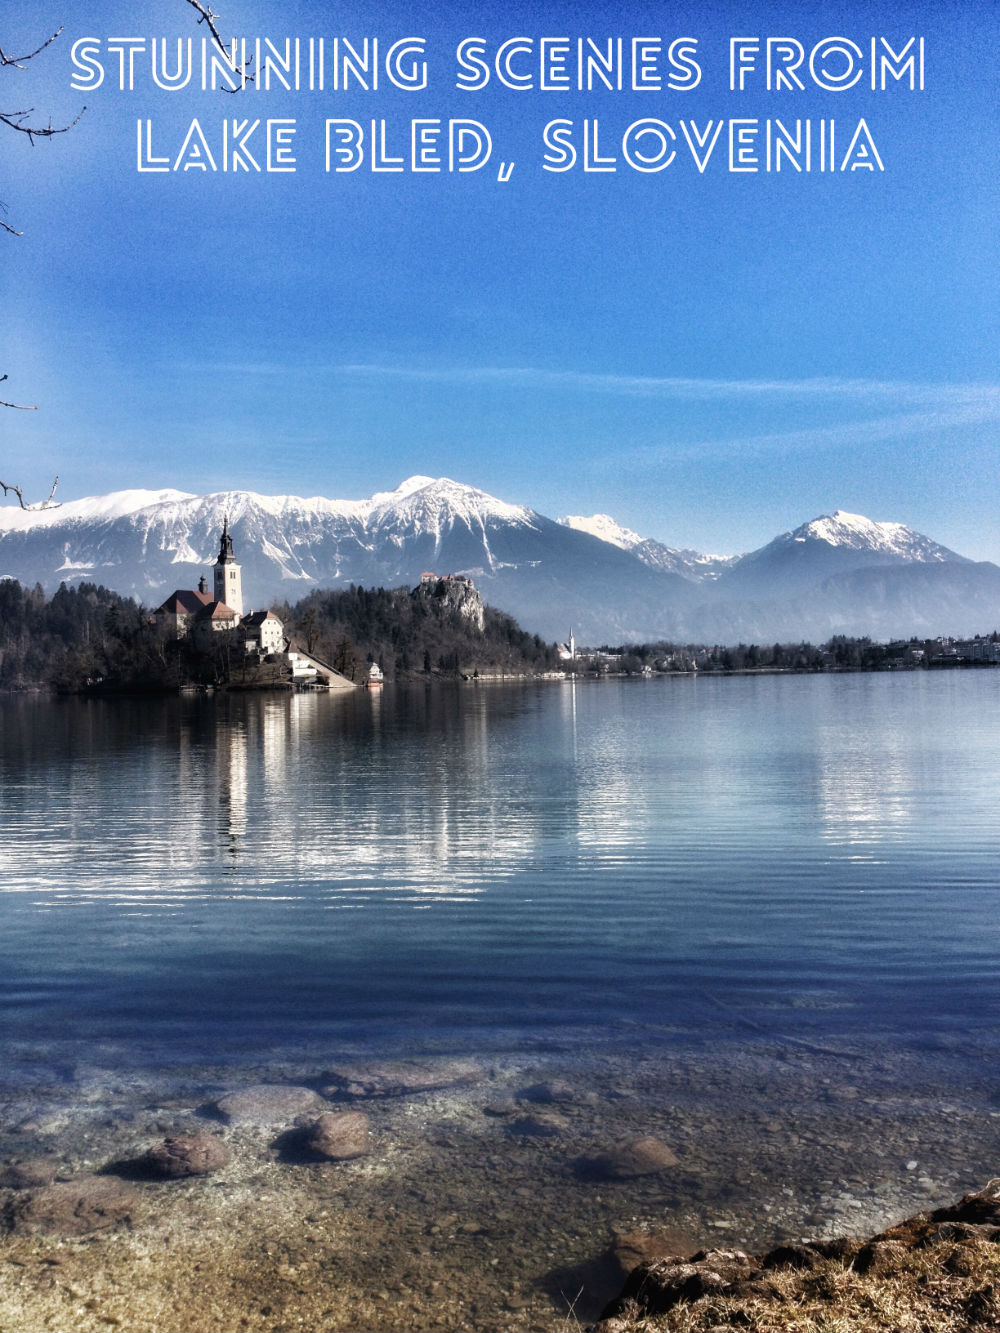 Stunning scenes from Lake Bled, Slovenia